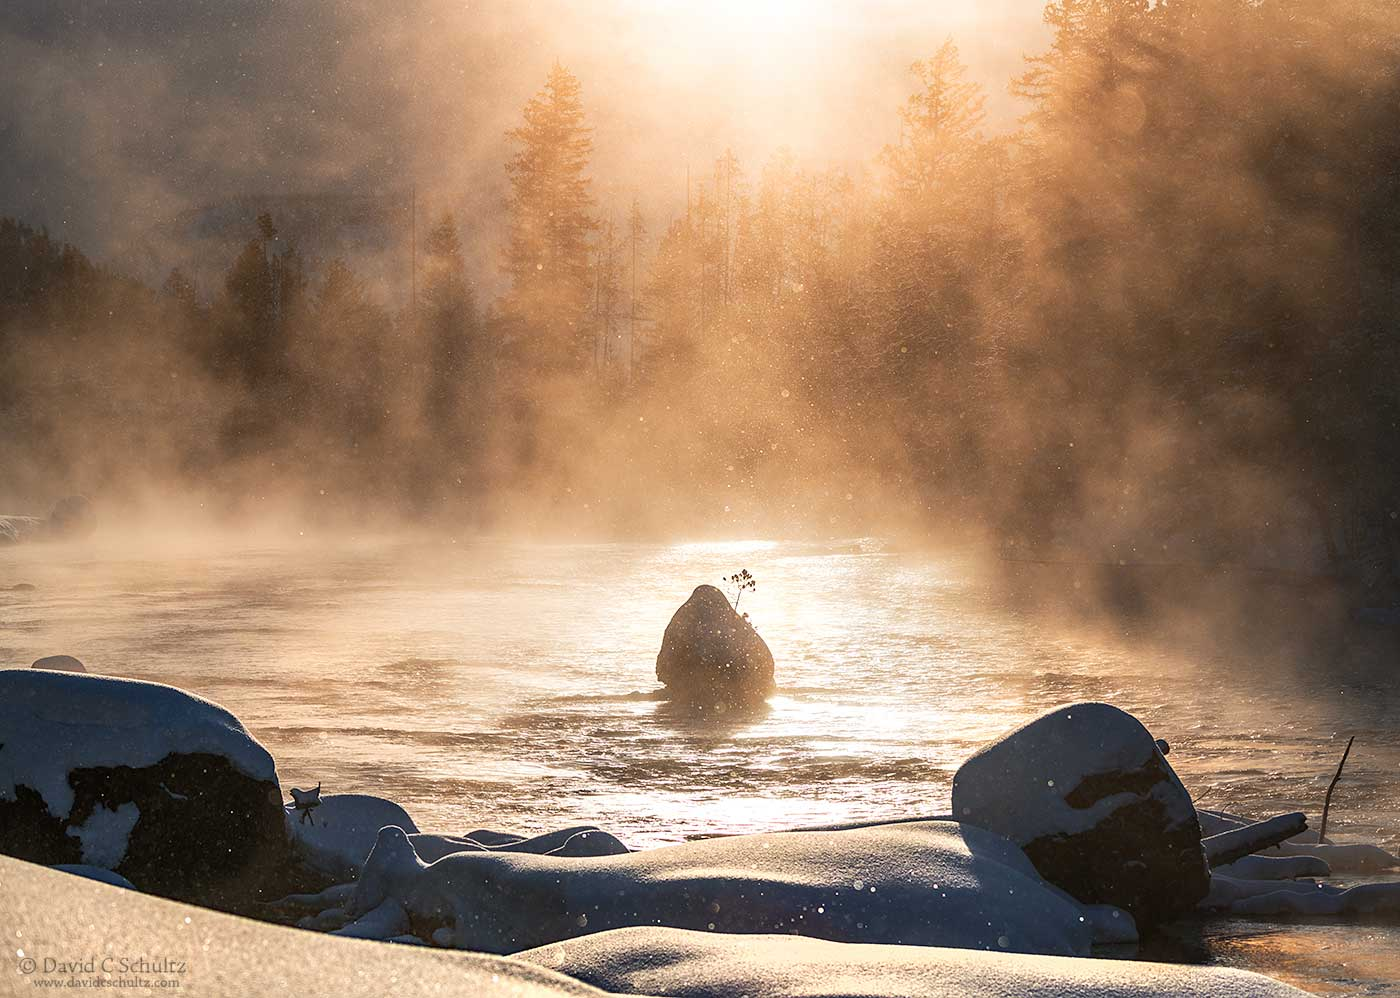 Steam coming off the Firehole river at sunrise.